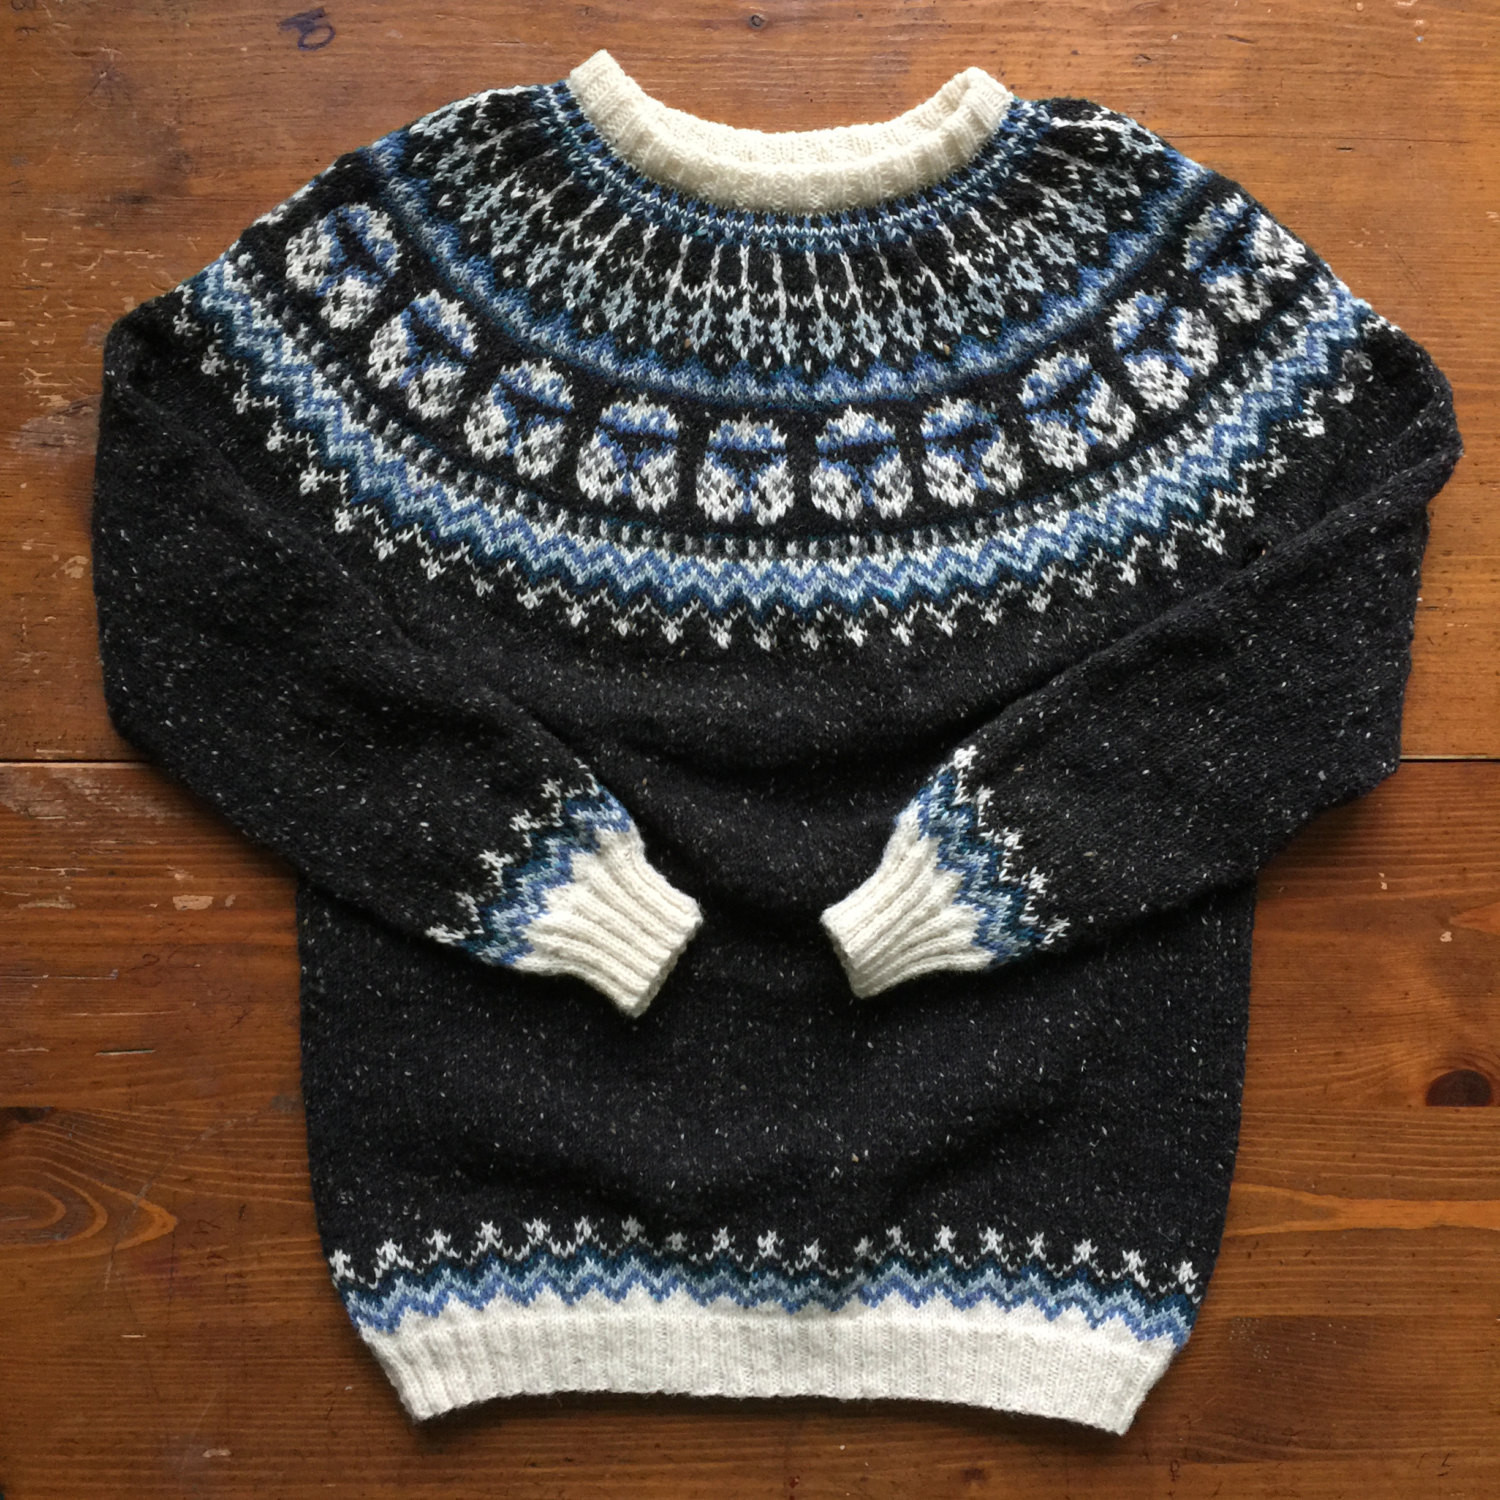 Star Wars sweaters by Natela Datura Design - The Kessel Runway